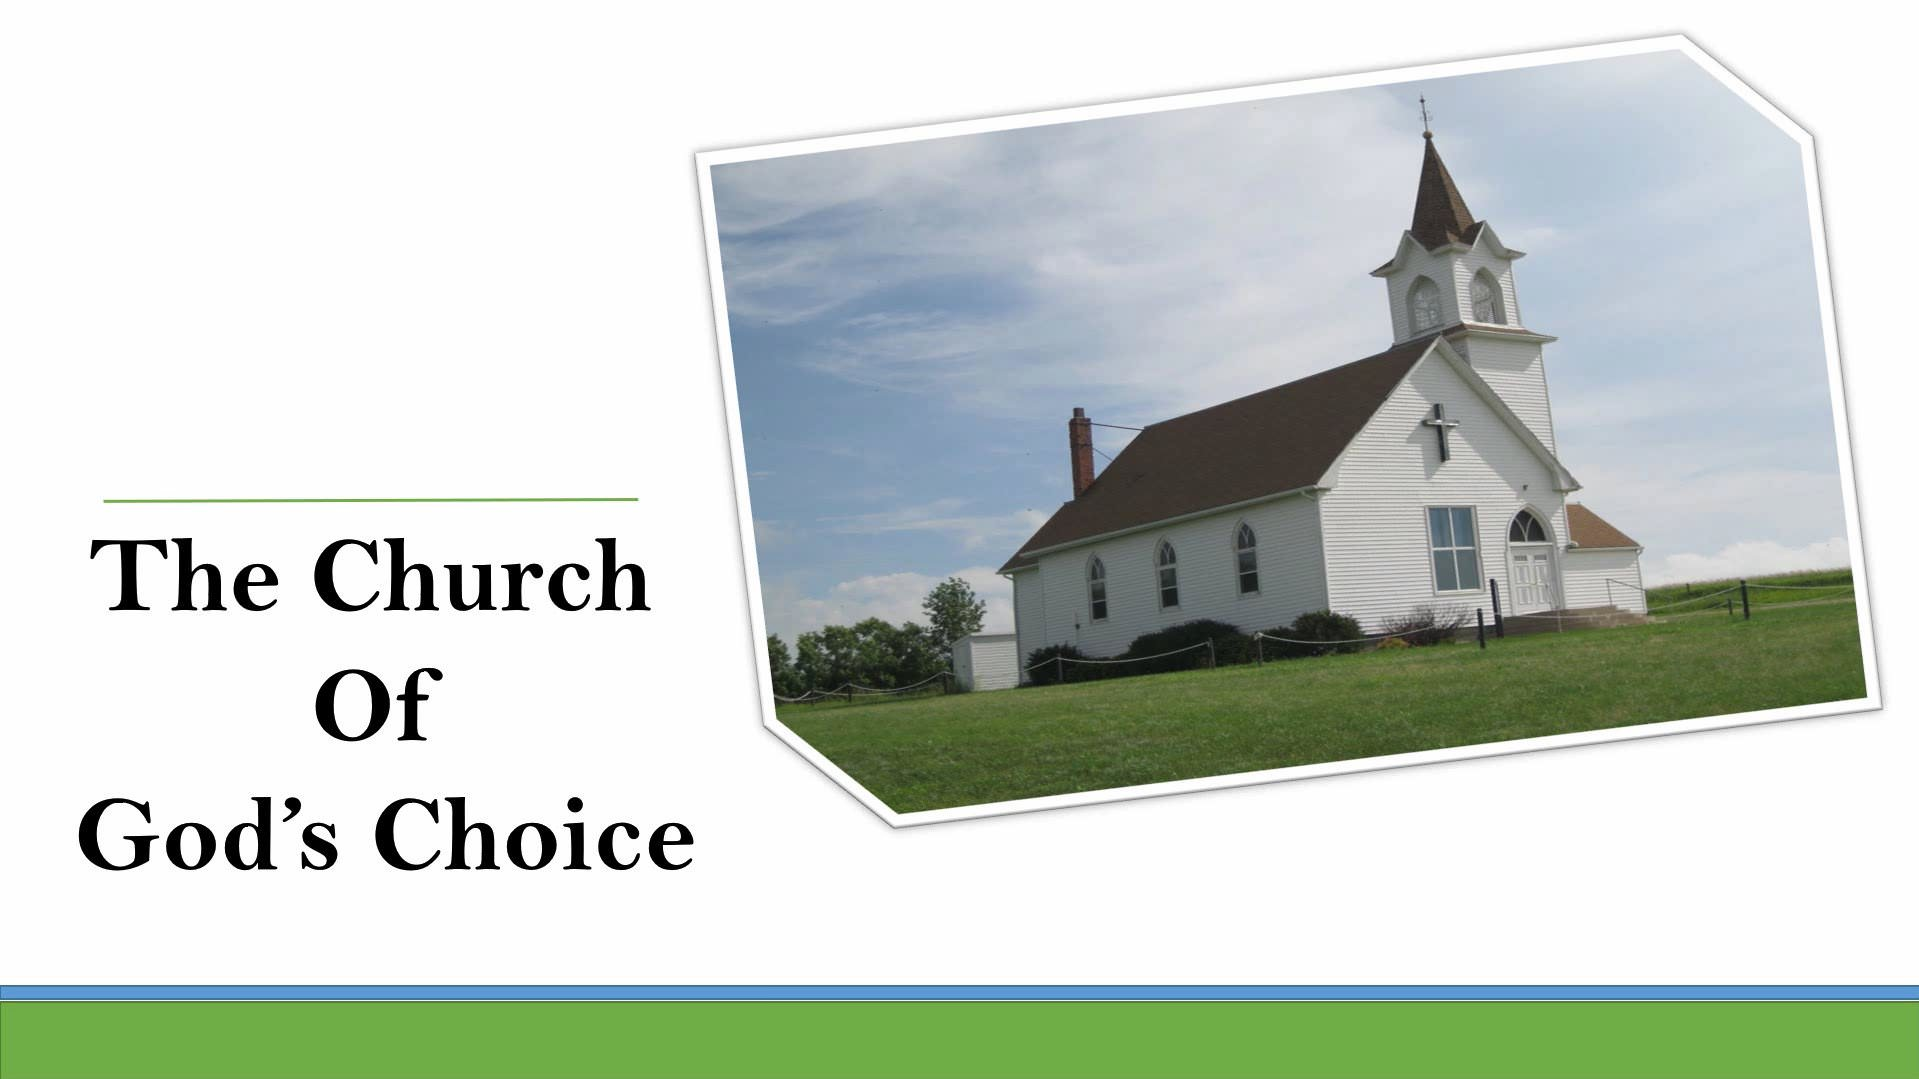 The Church Of God's Choice